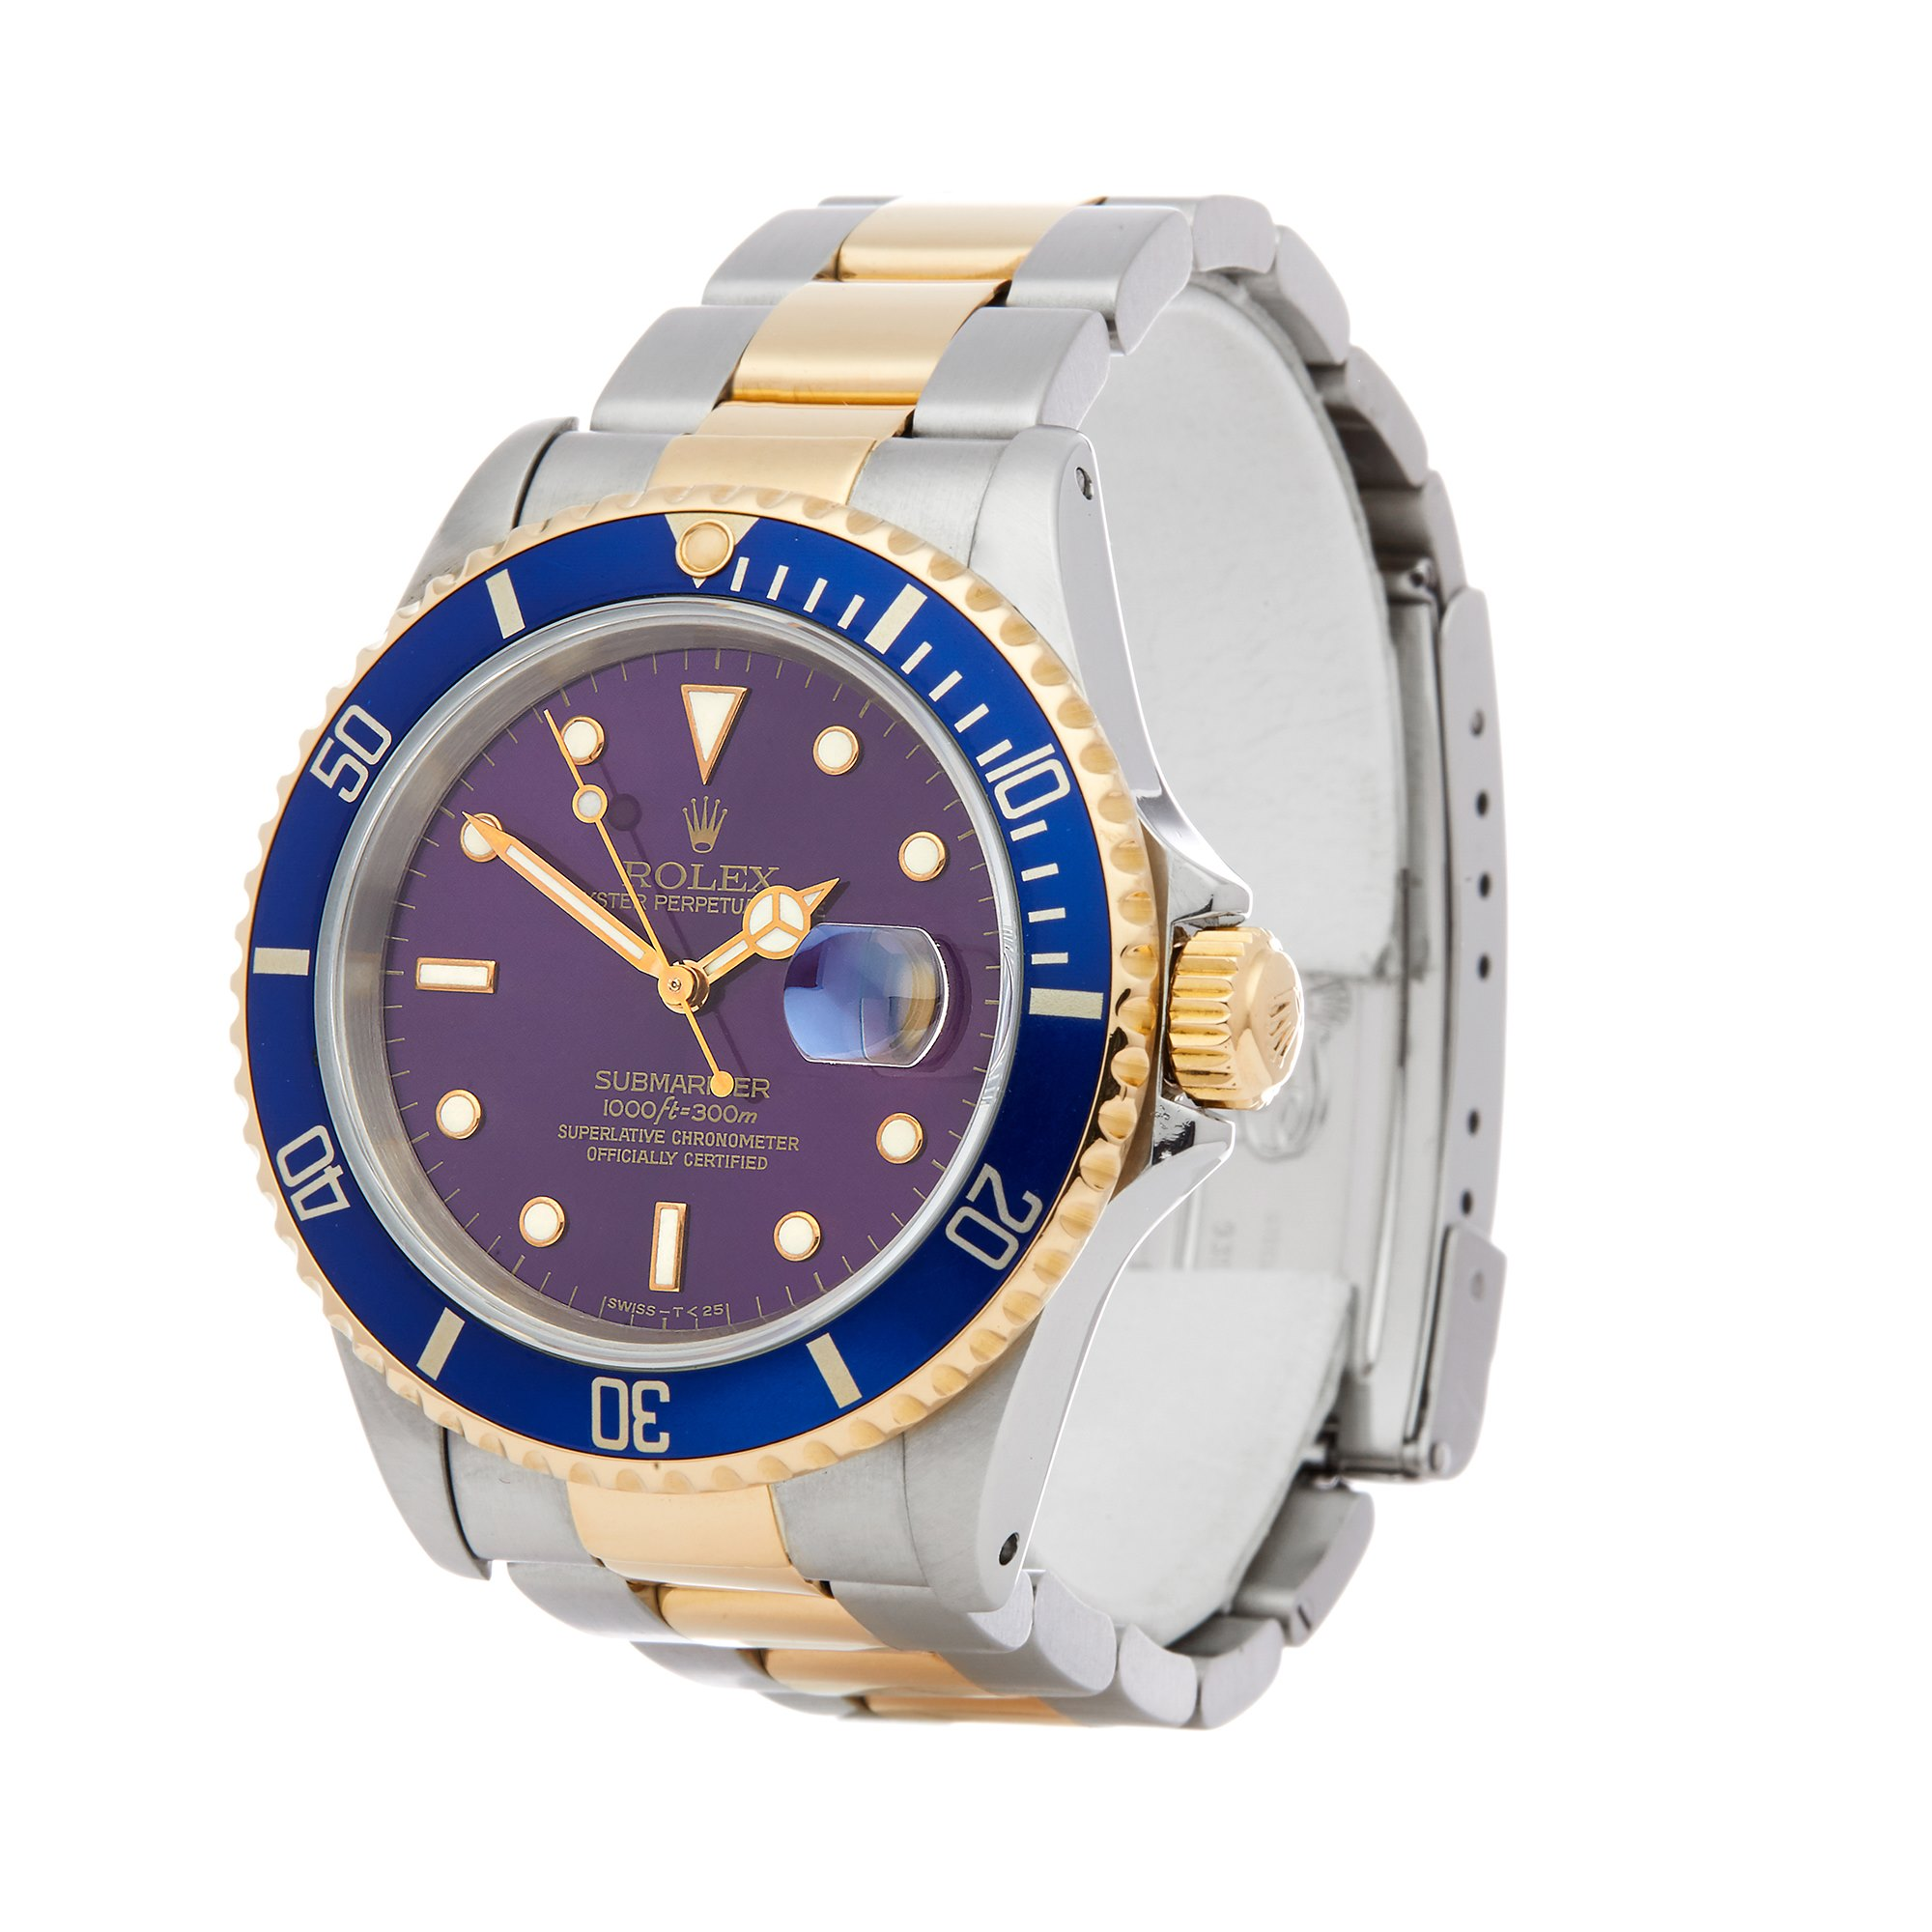 Rolex Submariner Date 16613 Men Stainless Steel & Yellow Gold Watch - Image 8 of 8